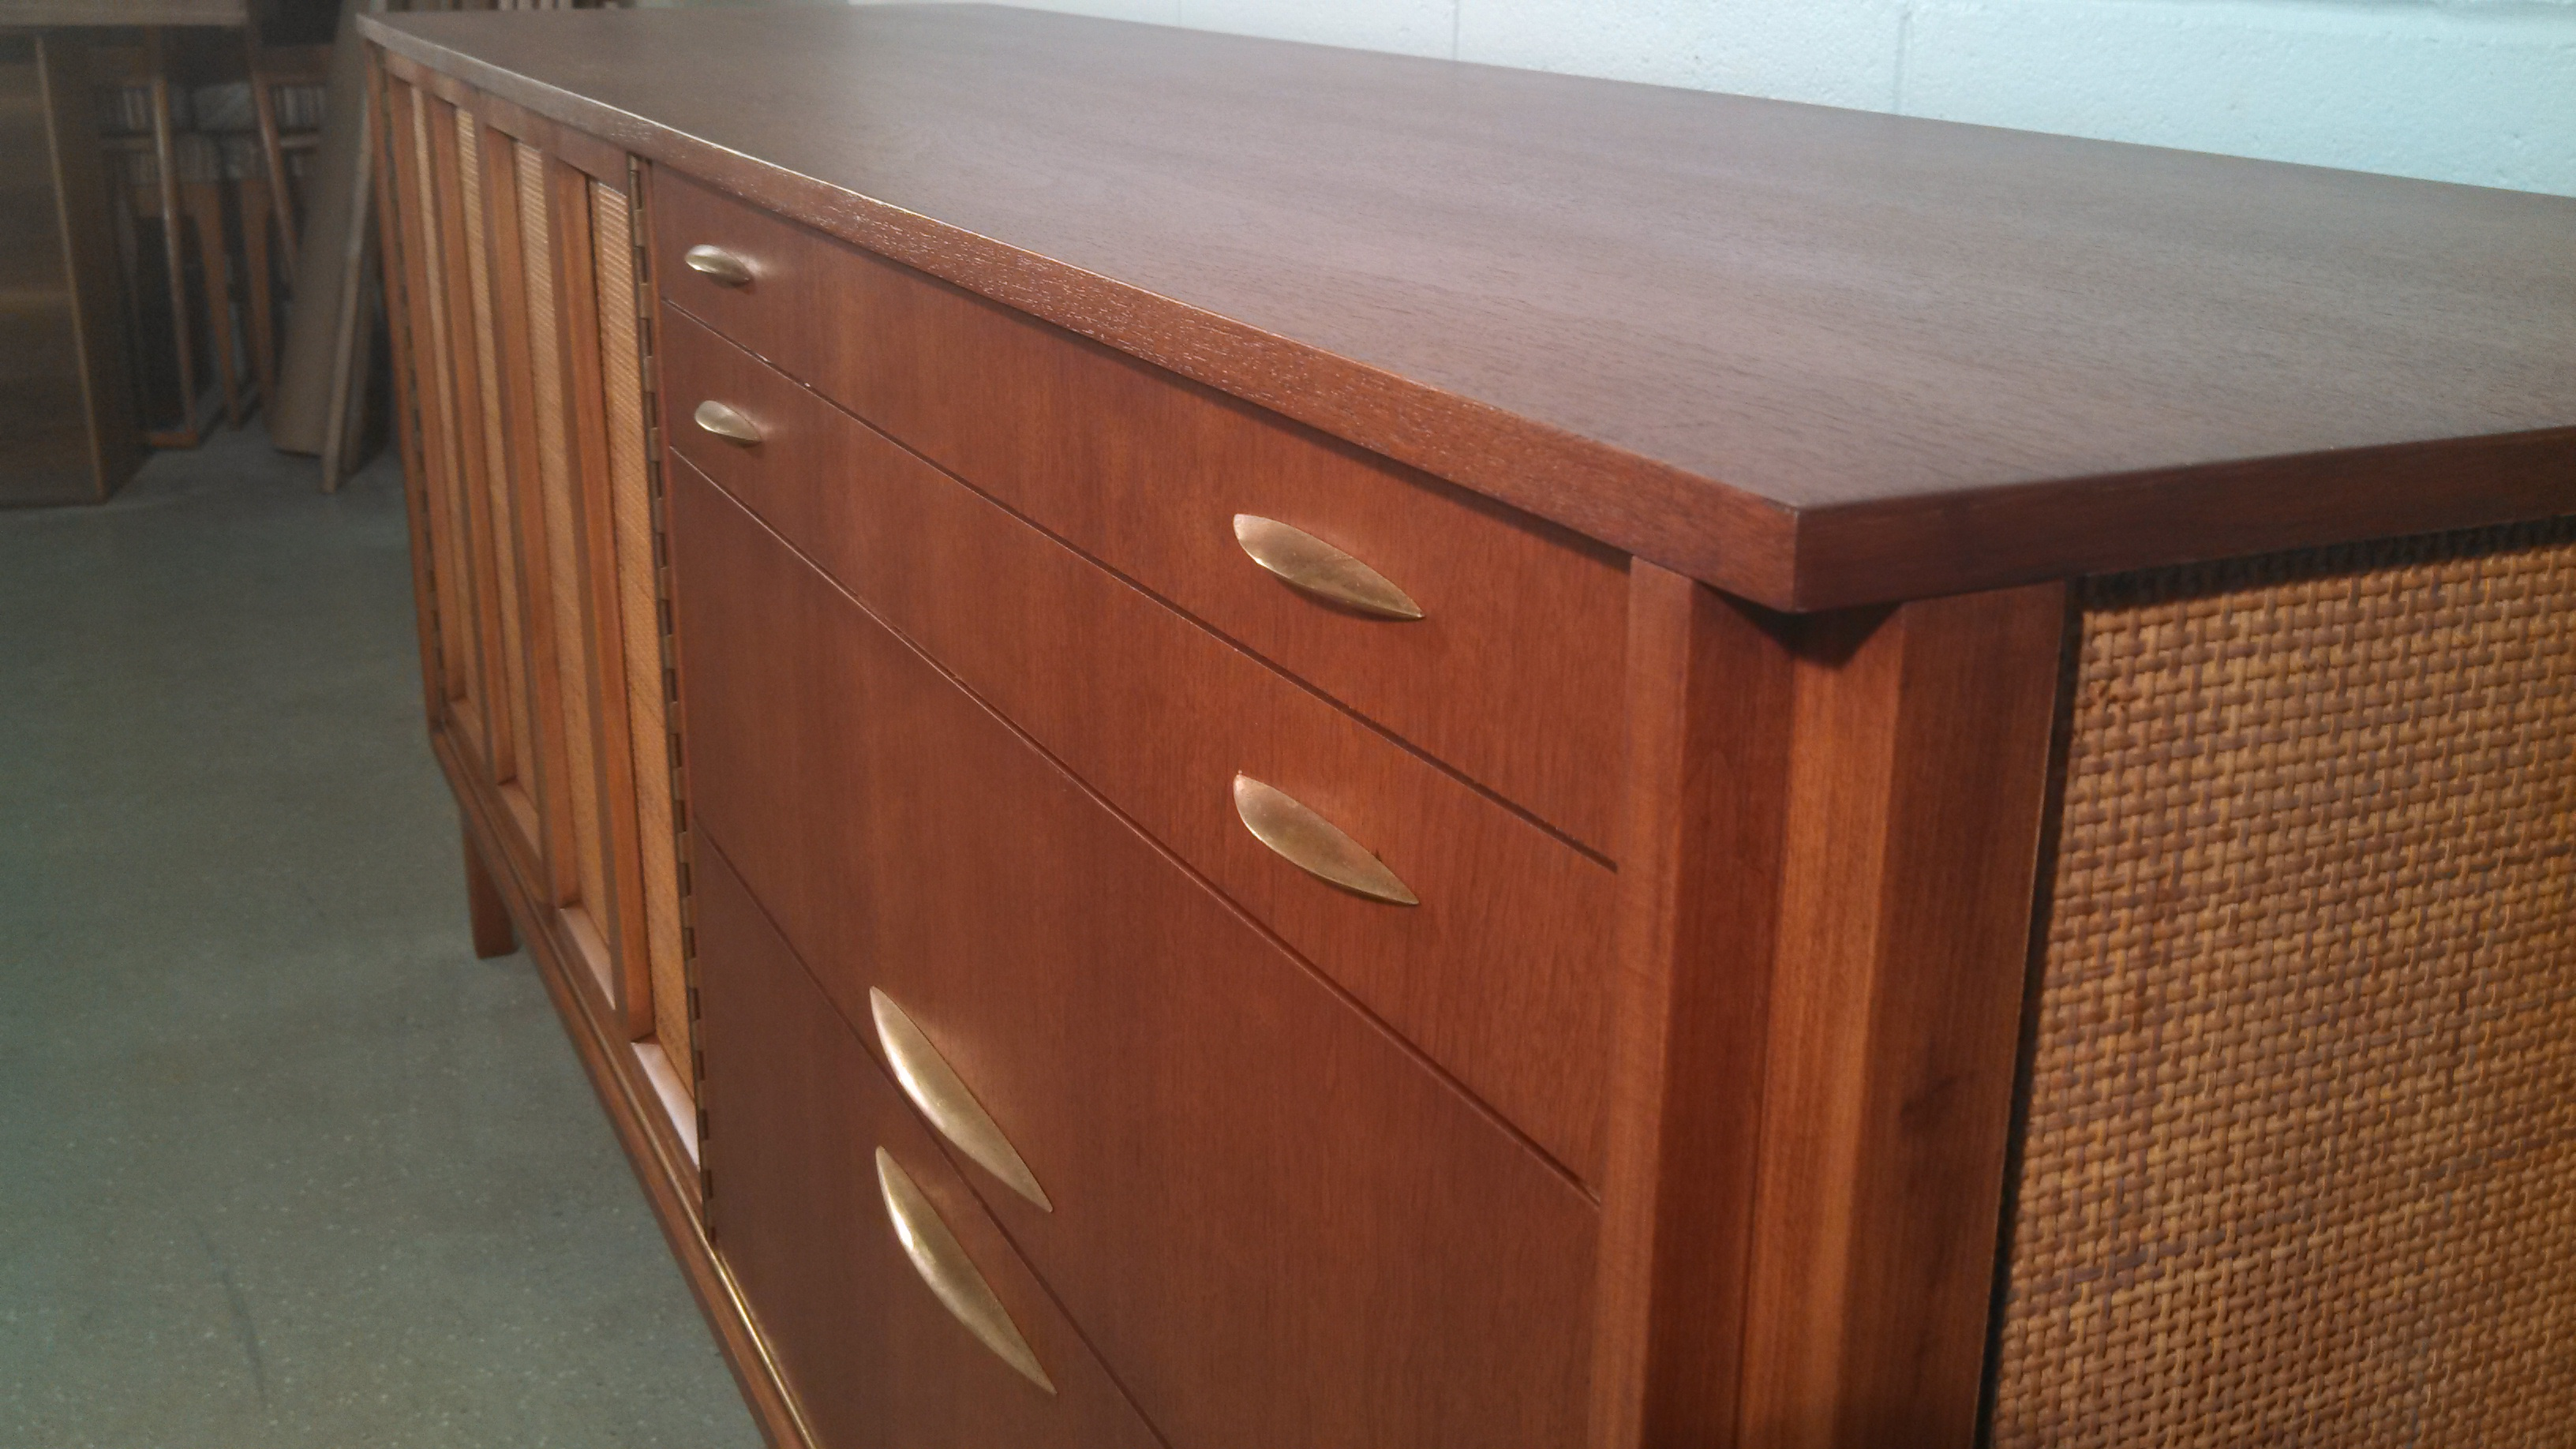 Again, the finished credenza.